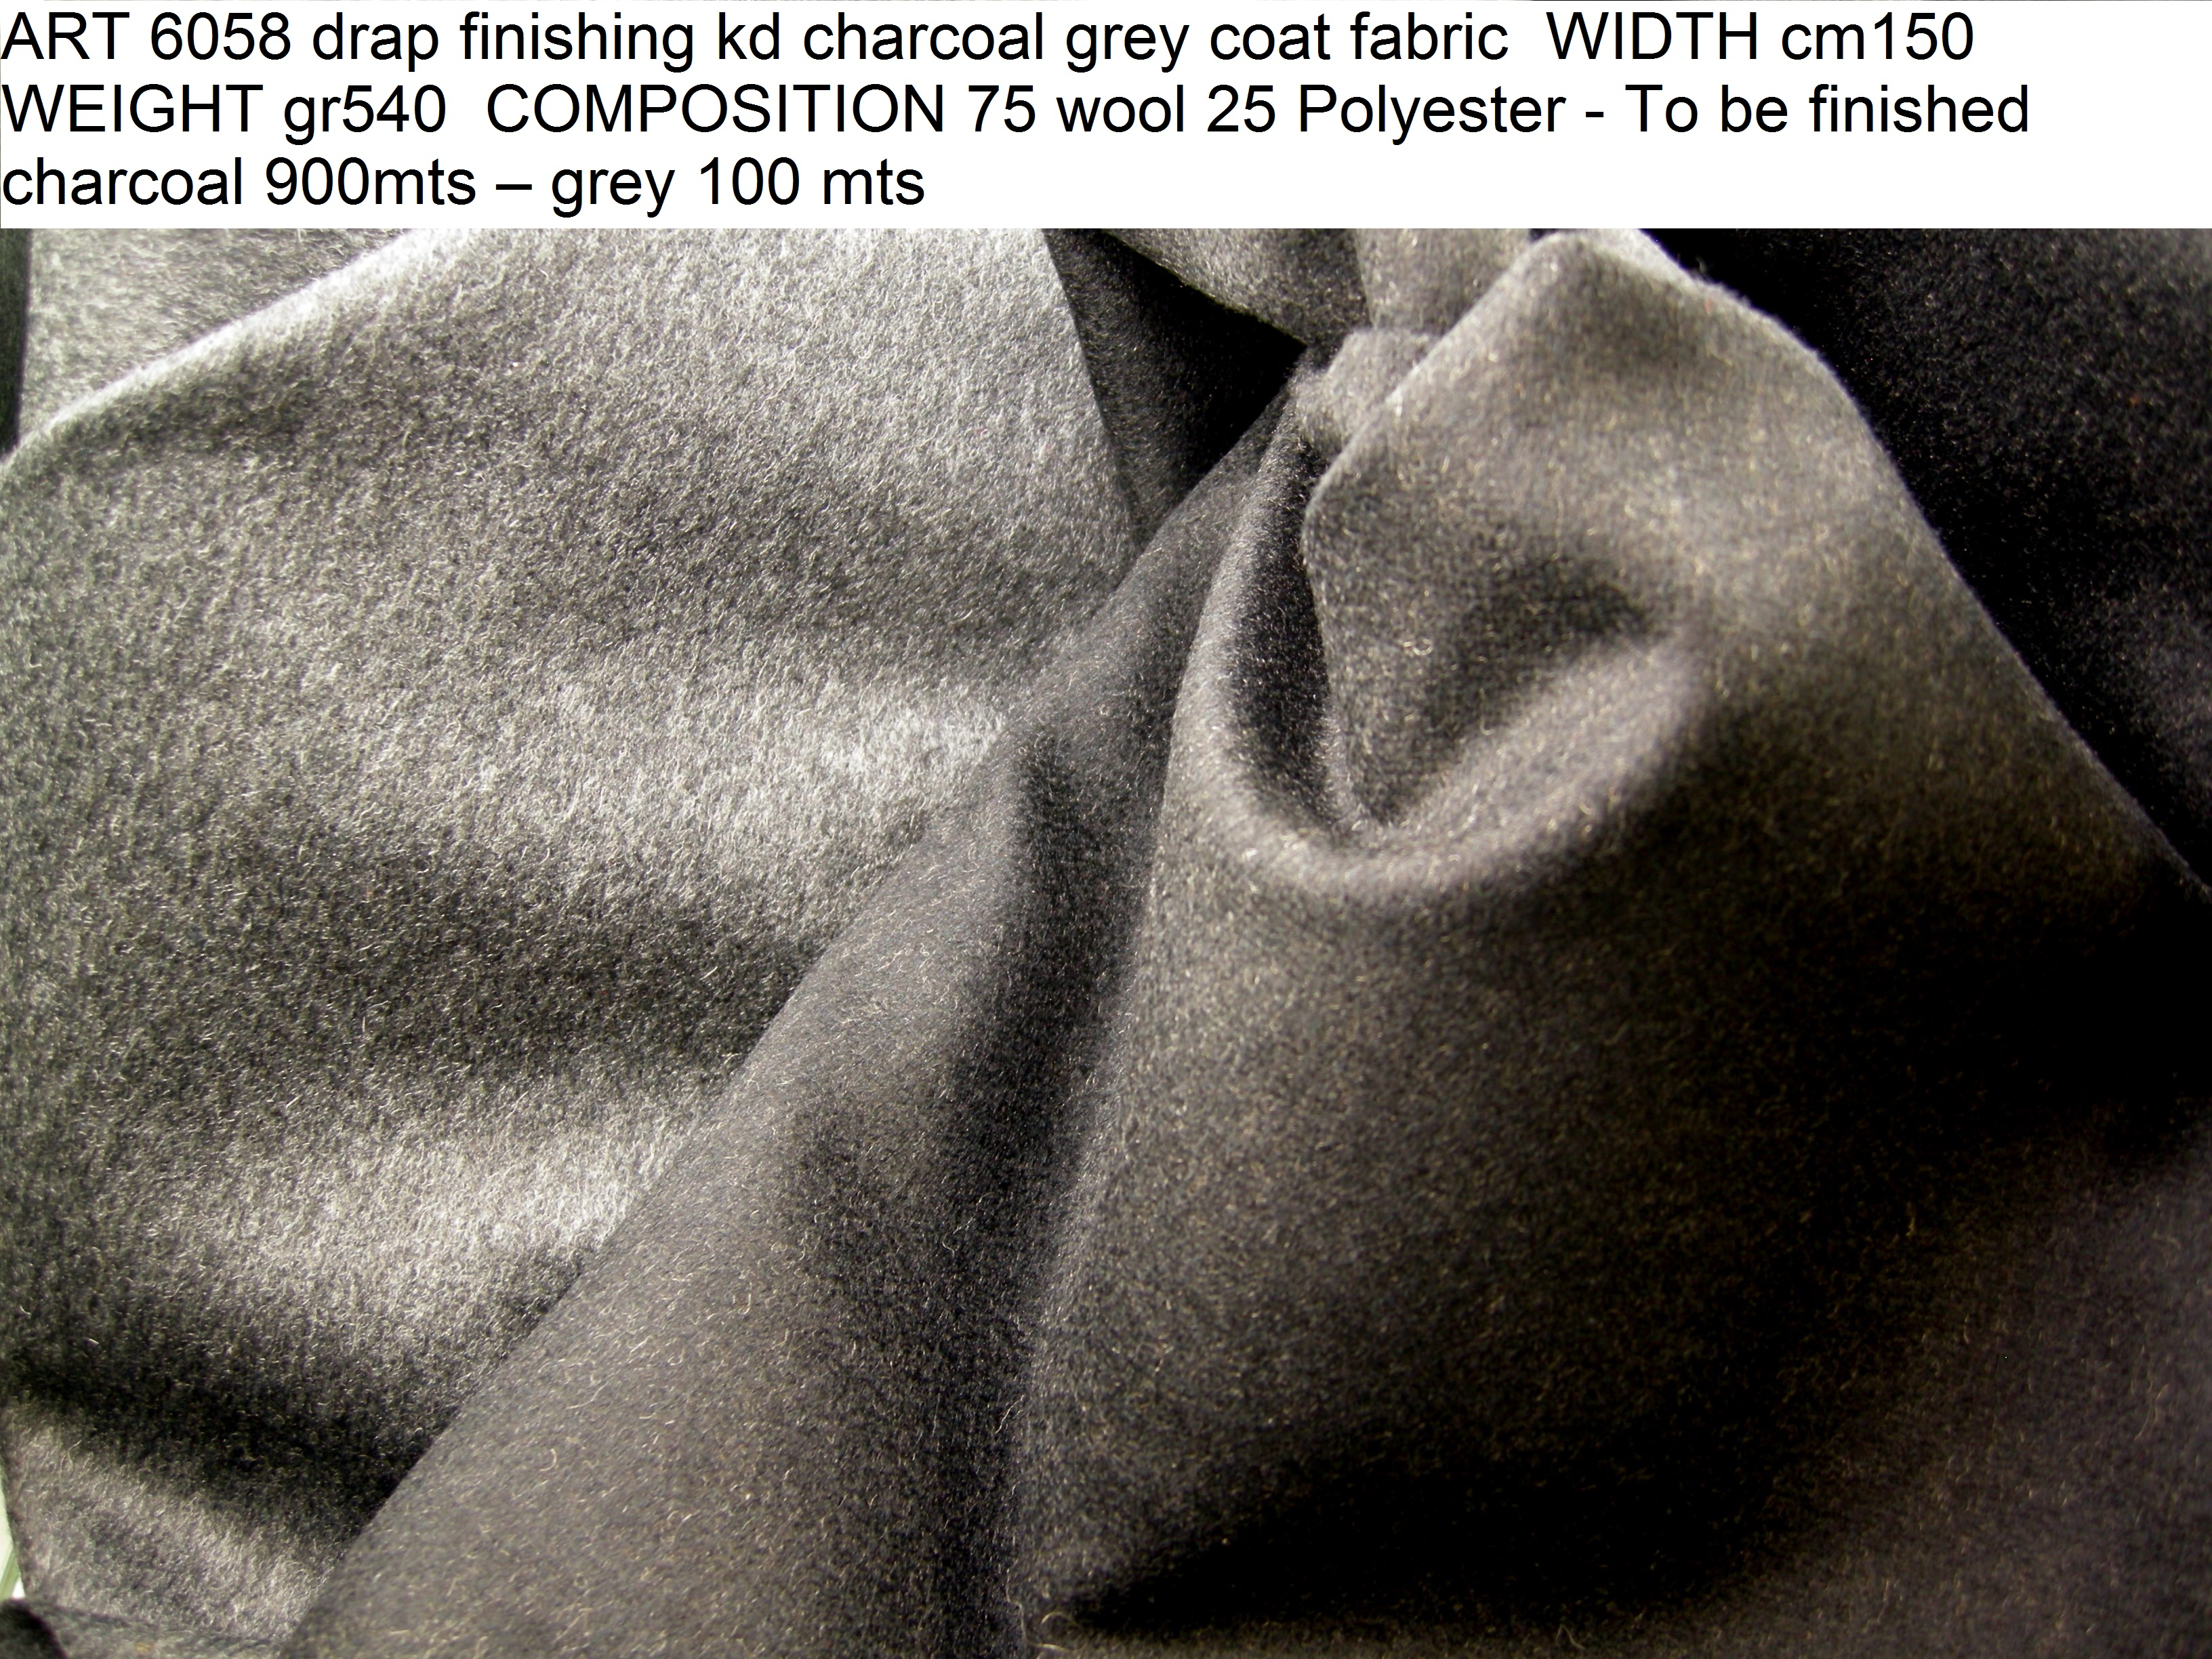 ART 6058 drap finishing kd charcoal grey coat fabric WIDTH cm150 WEIGHT gr540 COMPOSITION 75 wool 25 Polyester - To be finished charcoal 900mts – grey 100 mts